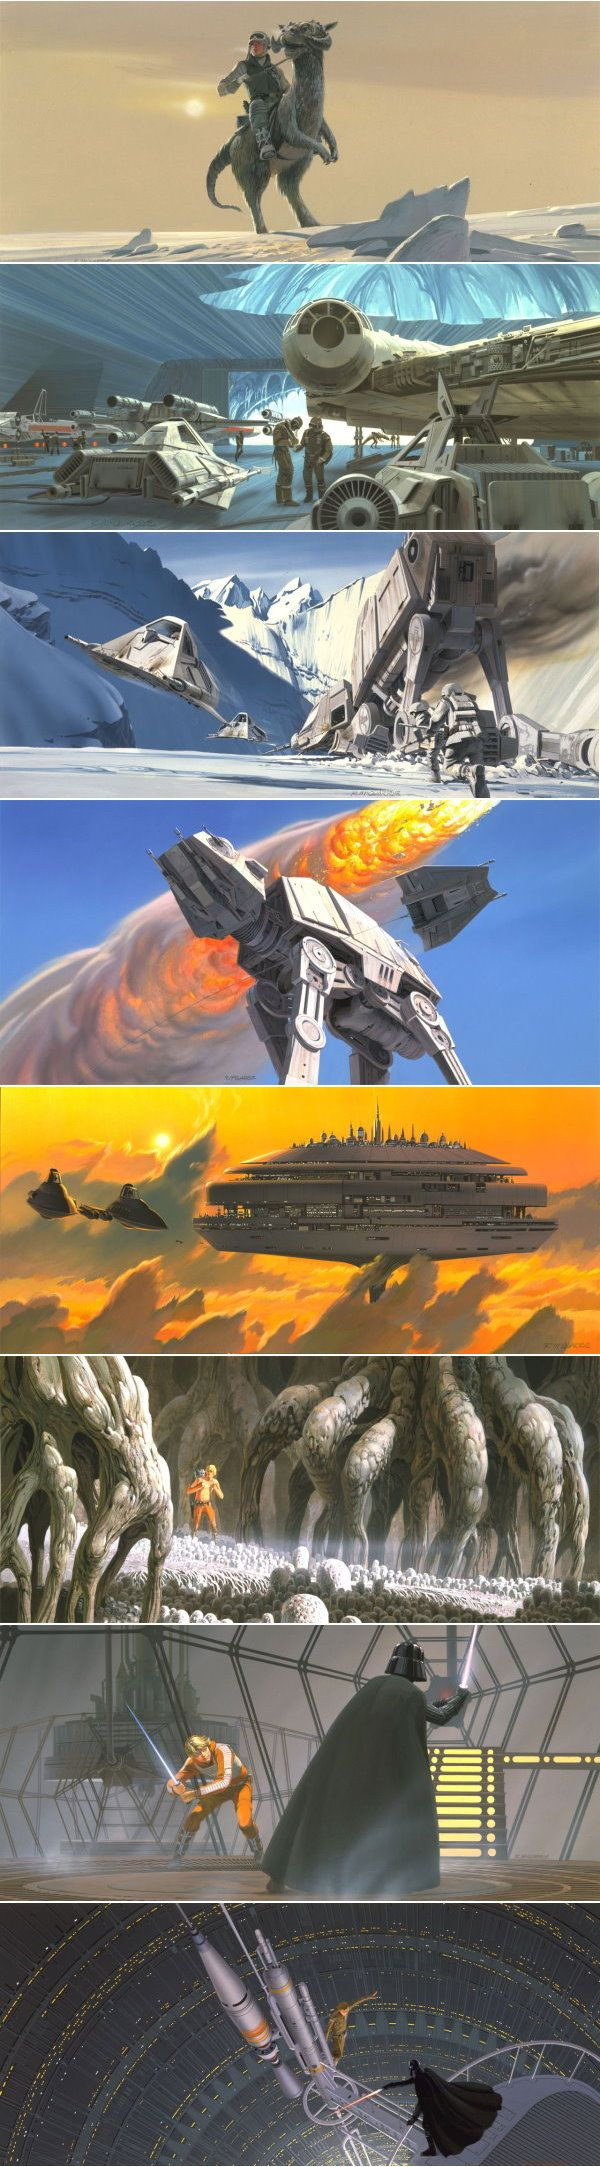 Ralph McQuarrie - Star Wars Episode V Production Paintings